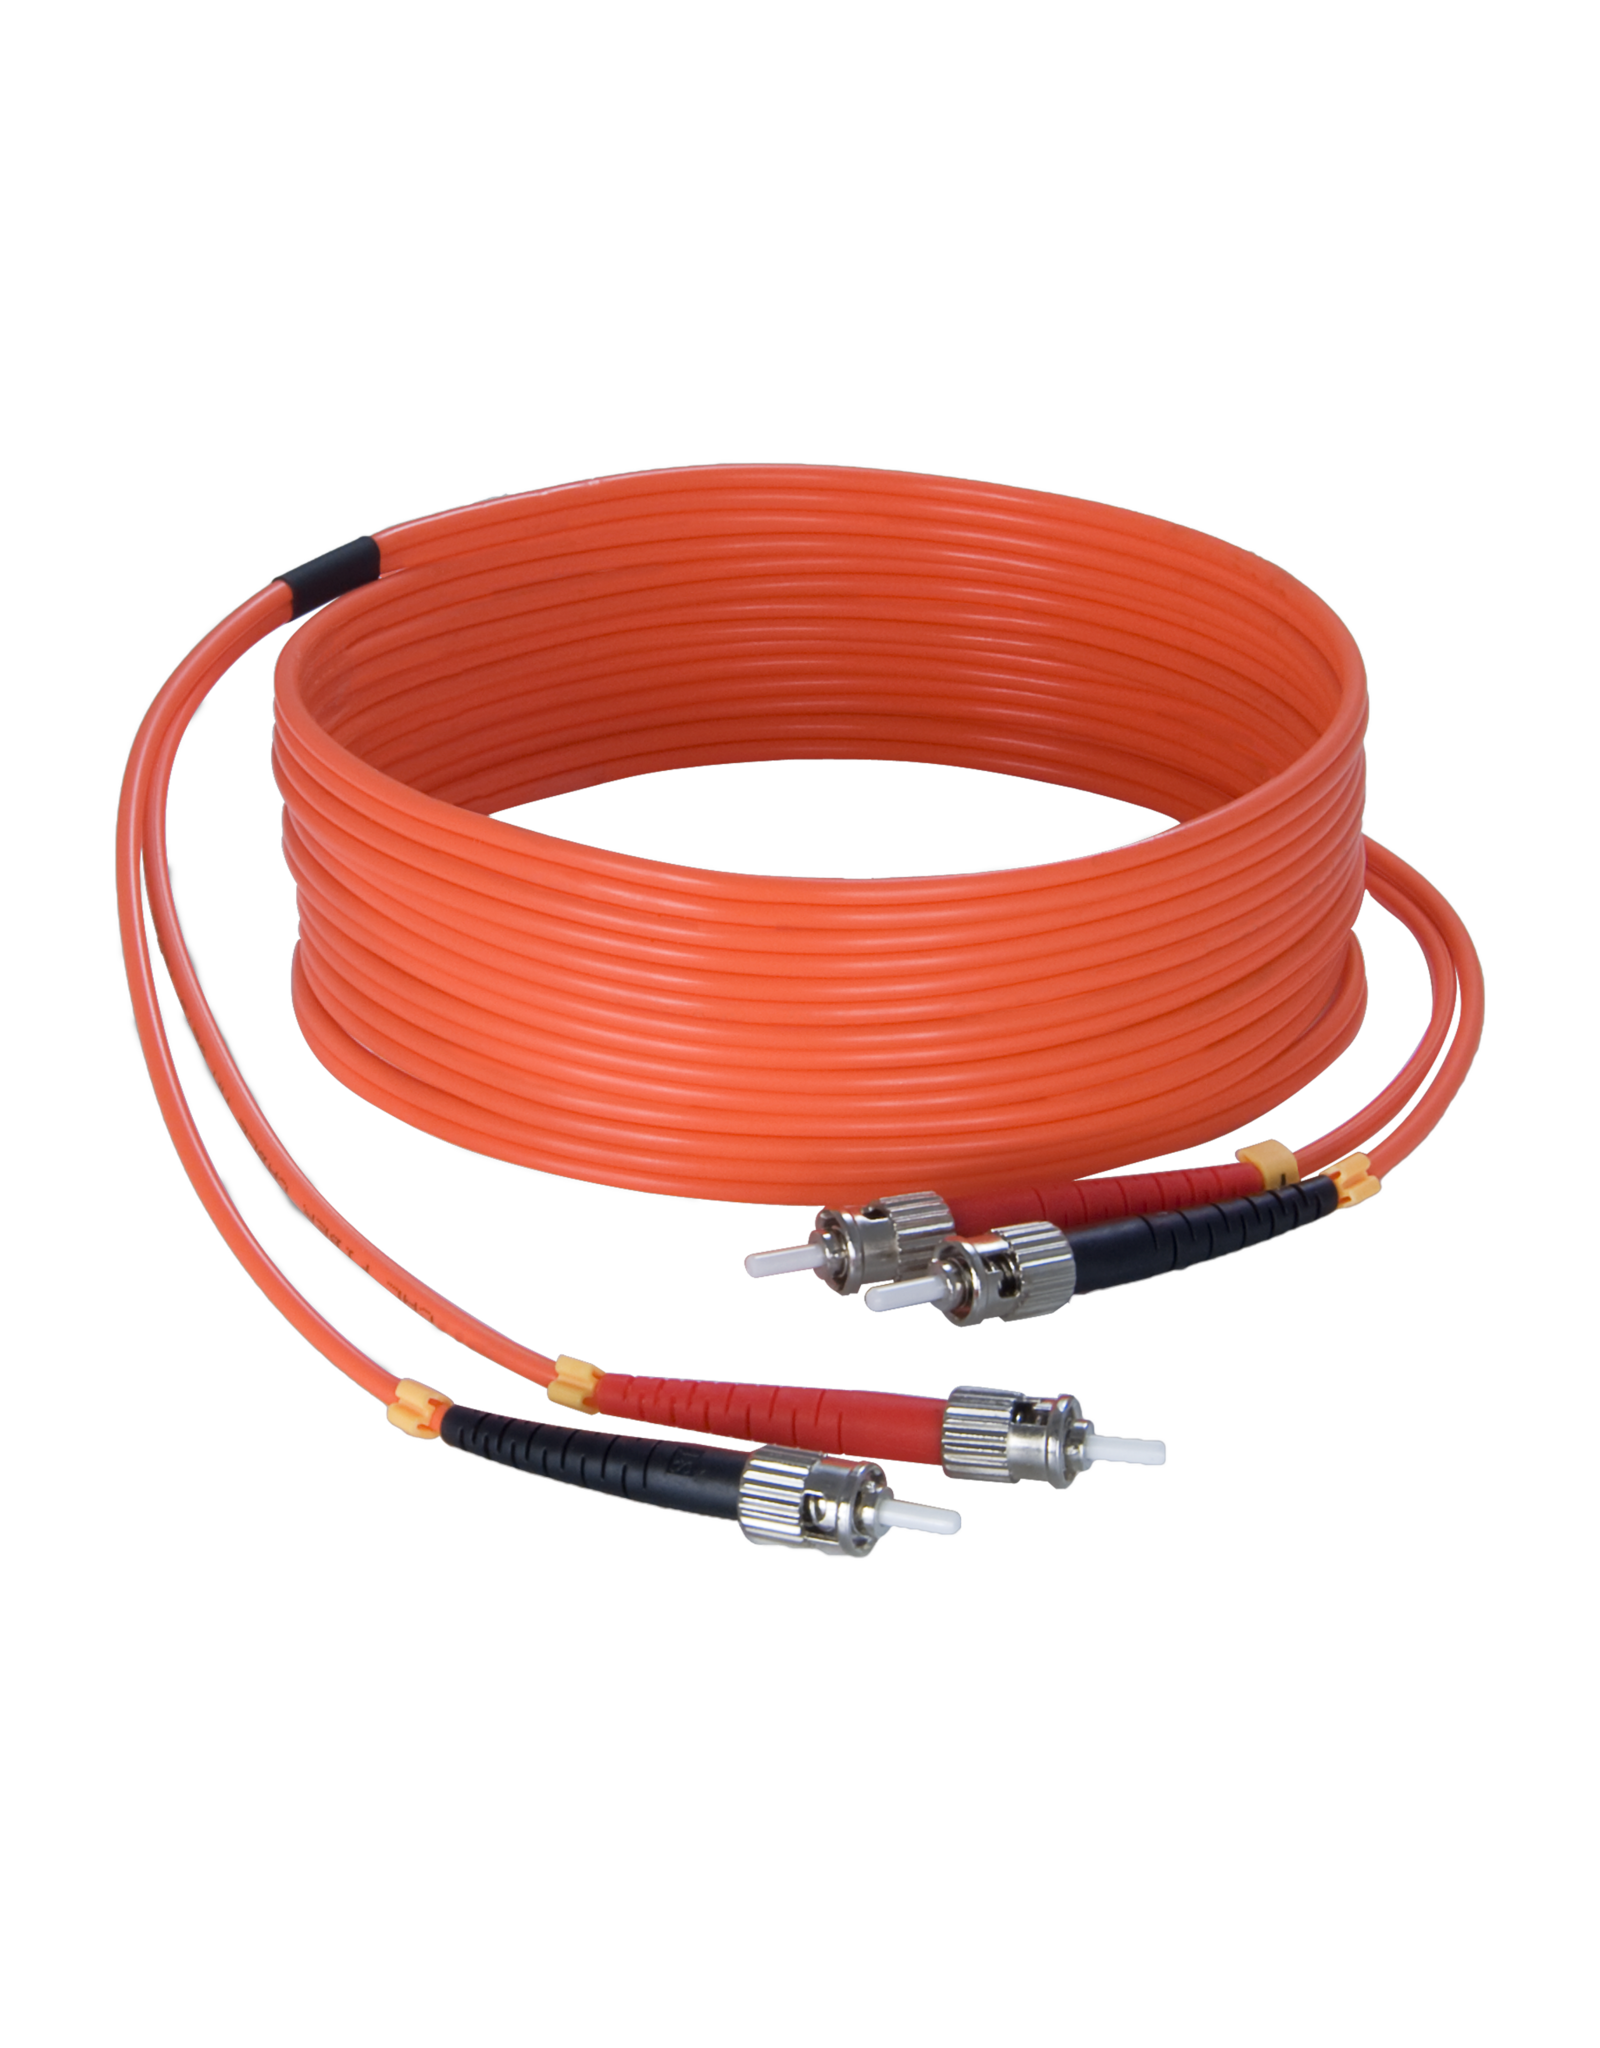 Audac Fiber optic cable - st/pc - st/pc - LSHF 3 meter